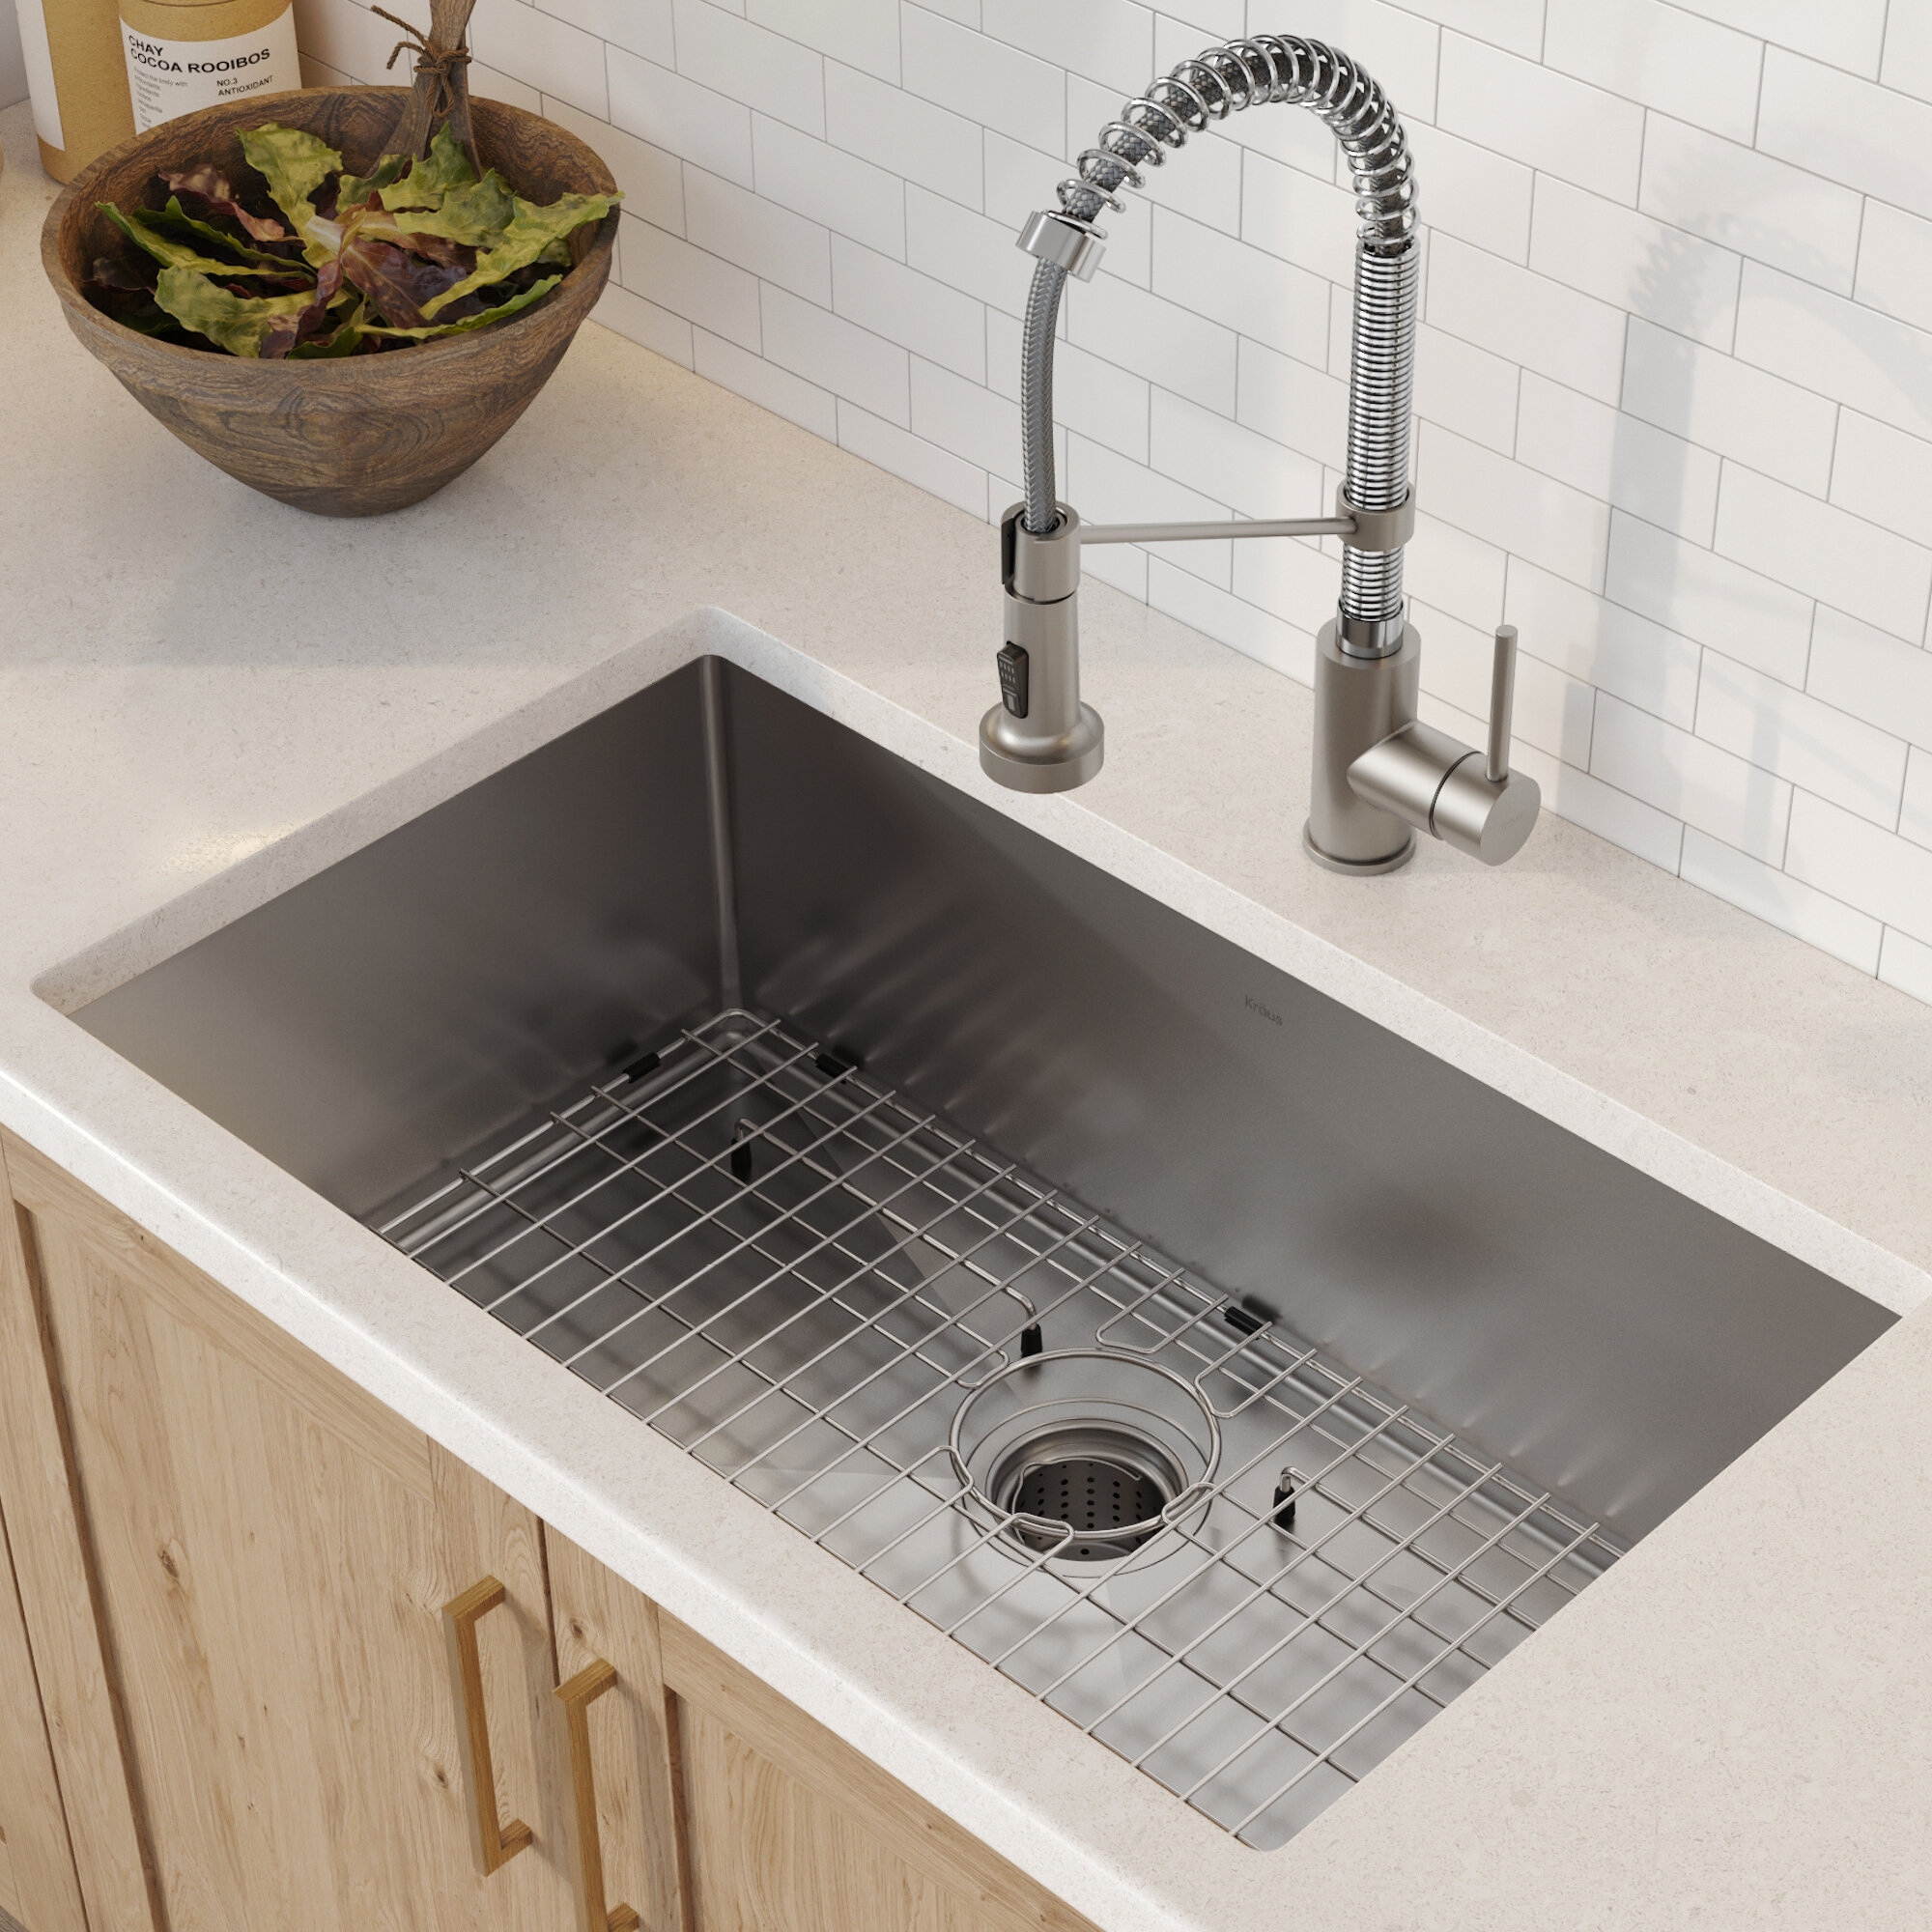 Kraus Standart Pro 30 L X 18 W Undermount Kitchen Sink With